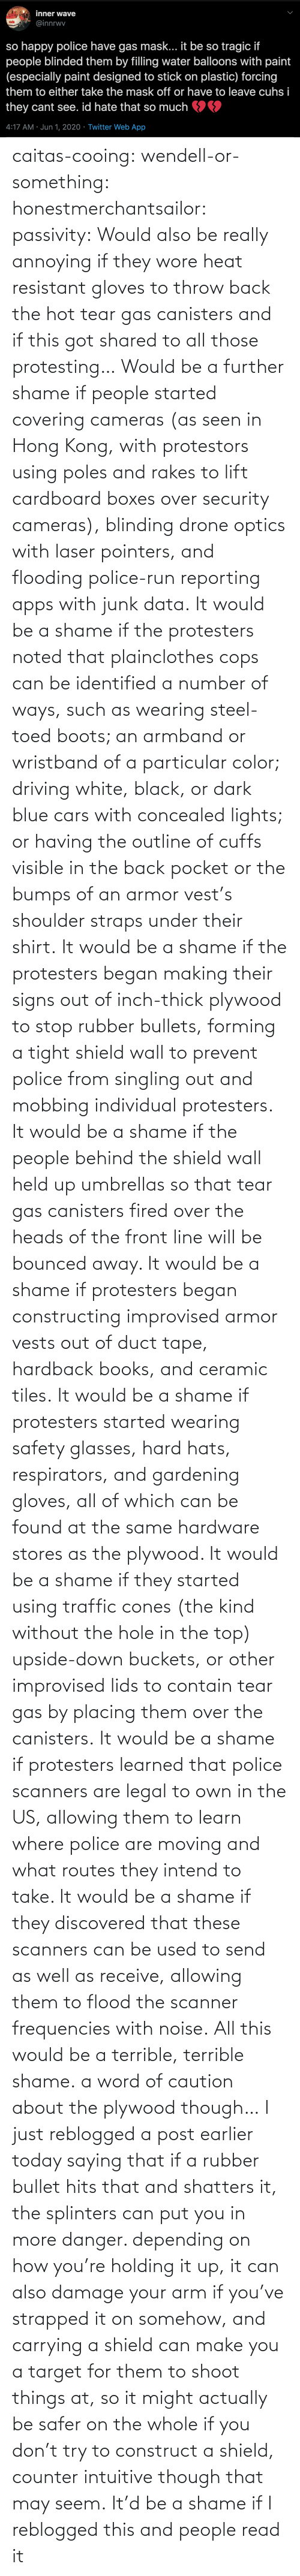 read: caitas-cooing:  wendell-or-something: honestmerchantsailor:  passivity: Would also be really annoying if they wore heat resistant gloves to throw back the hot tear gas canisters and if this got shared to all those protesting… Would be a further shame if people started covering cameras (as seen in Hong Kong, with protestors using poles and rakes to lift cardboard boxes over security cameras), blinding drone optics with laser pointers, and flooding police-run reporting apps with junk data. It would be a shame if the protesters noted that plainclothes cops can be identified a number of ways, such as wearing steel-toed boots; an armband or wristband of a particular color; driving white, black, or dark blue cars with concealed lights; or having the outline of cuffs visible in the back pocket or the bumps of an armor vest's shoulder straps under their shirt. It would be a shame if the protesters began making their signs out of inch-thick plywood to stop rubber bullets, forming a tight shield wall to prevent police from singling out and mobbing individual protesters. It would be a shame if the people behind the shield wall held up umbrellas so that tear gas canisters fired over the heads of the front line will be bounced away. It would be a shame if protesters began constructing improvised armor vests out of duct tape, hardback books, and ceramic tiles. It would be a shame if protesters started wearing safety glasses, hard hats, respirators, and gardening gloves, all of which can be found at the same hardware stores as the plywood. It would be a shame if they started using traffic cones (the kind without the hole in the top) upside-down buckets, or other improvised lids to contain tear gas by placing them over the canisters. It would be a shame if protesters learned that police scanners are legal to own in the US, allowing them to learn where police are moving and what routes they intend to take. It would be a shame if they discovered that these scanners can be used to send as well as receive, allowing them to flood the scanner frequencies with noise. All this would be a terrible, terrible shame.    a word of caution about the plywood though… I just reblogged a post earlier today saying that if a rubber bullet hits that and shatters it, the splinters can put you in more danger. depending on how you're holding it up, it can also damage your arm if you've strapped it on somehow, and carrying a shield can make you a target for them to shoot things at, so it might actually be safer on the whole if you don't try to construct a shield, counter intuitive though that may seem.    It'd be a shame if I reblogged this and people read it